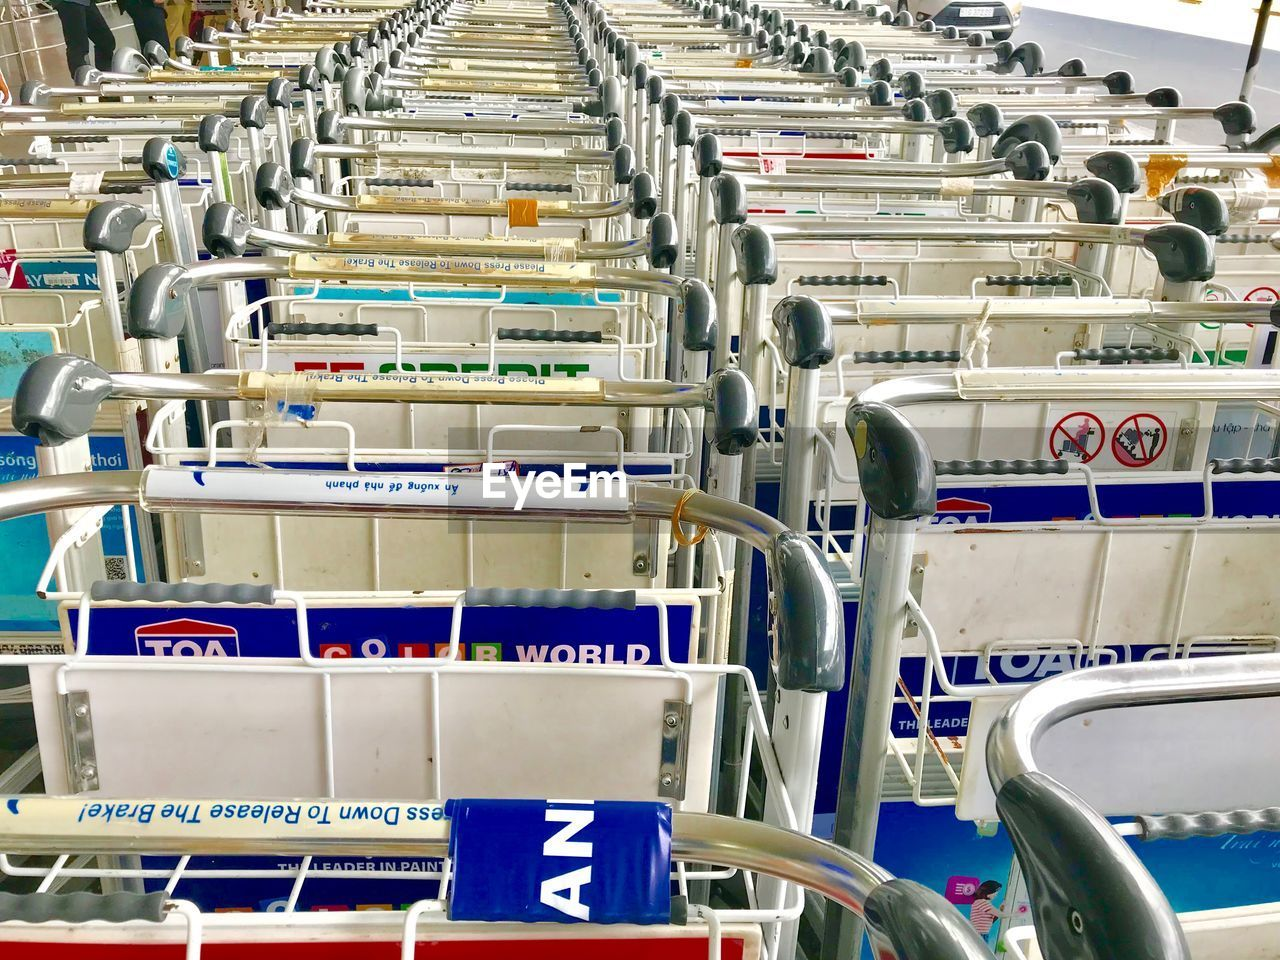 in a row, shopping cart, order, no people, indoors, industry, factory, metal, large group of objects, machinery, repetition, technology, abundance, absence, seat, blue, supermarket, conveyor belt, luggage cart, man made object, silver colored